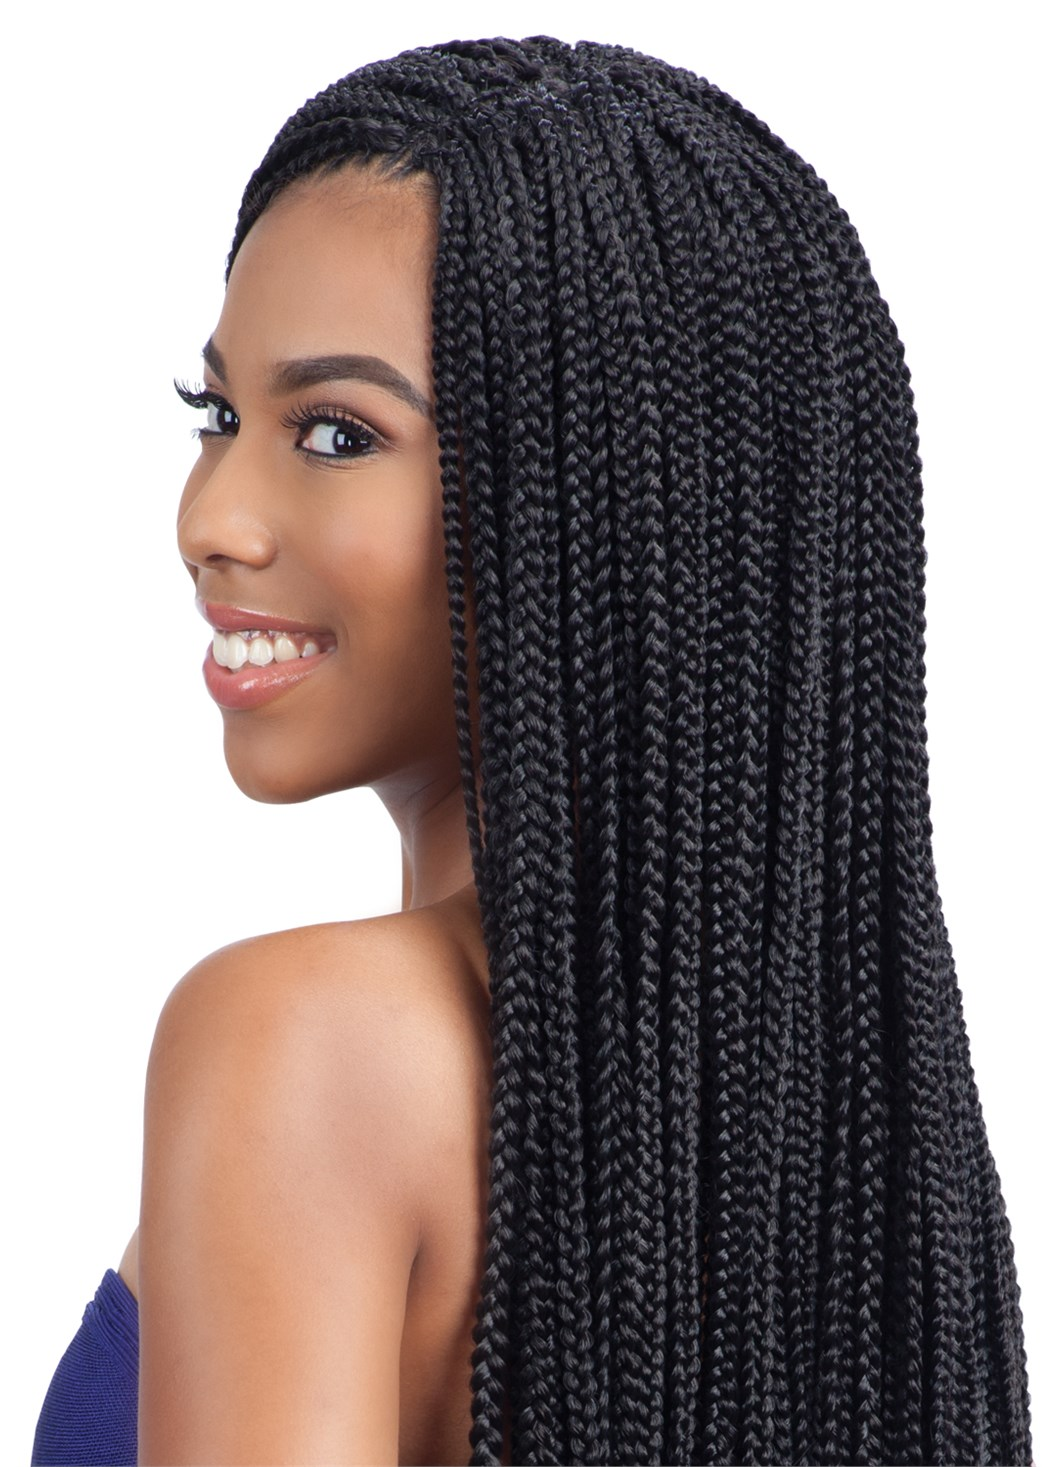 Crochet Box Braids Pre Braided : SMALL BOX BRAIDS - FREETRESS SYNTHETIC CROCHET BRAID HAIR PRE-LOOPED ...